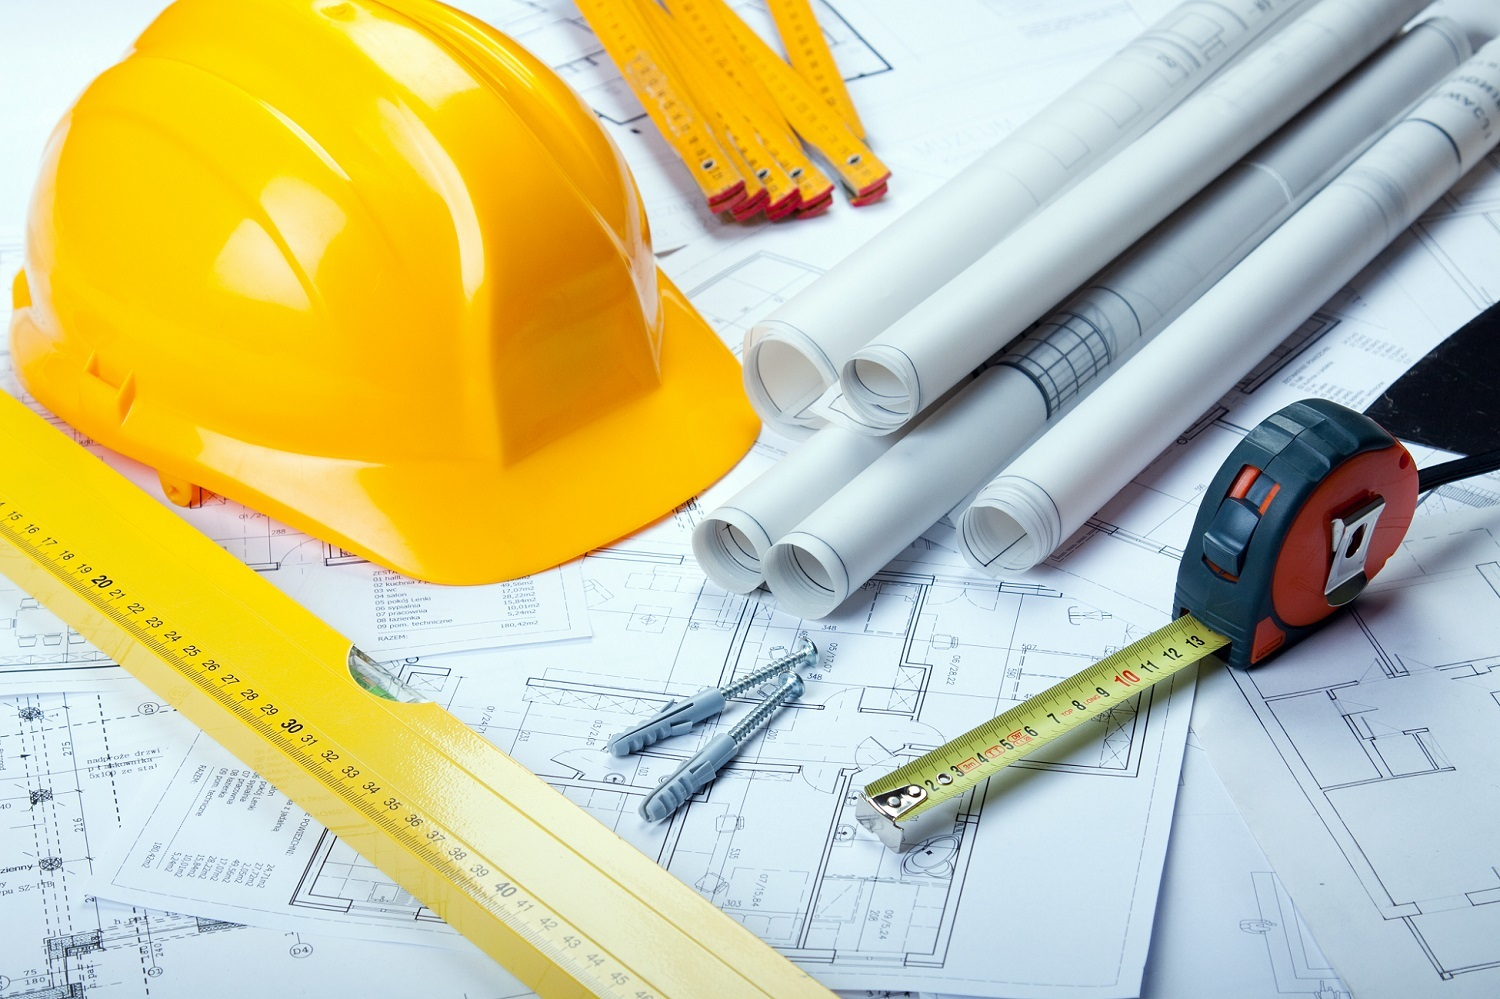 Building Services Engineer